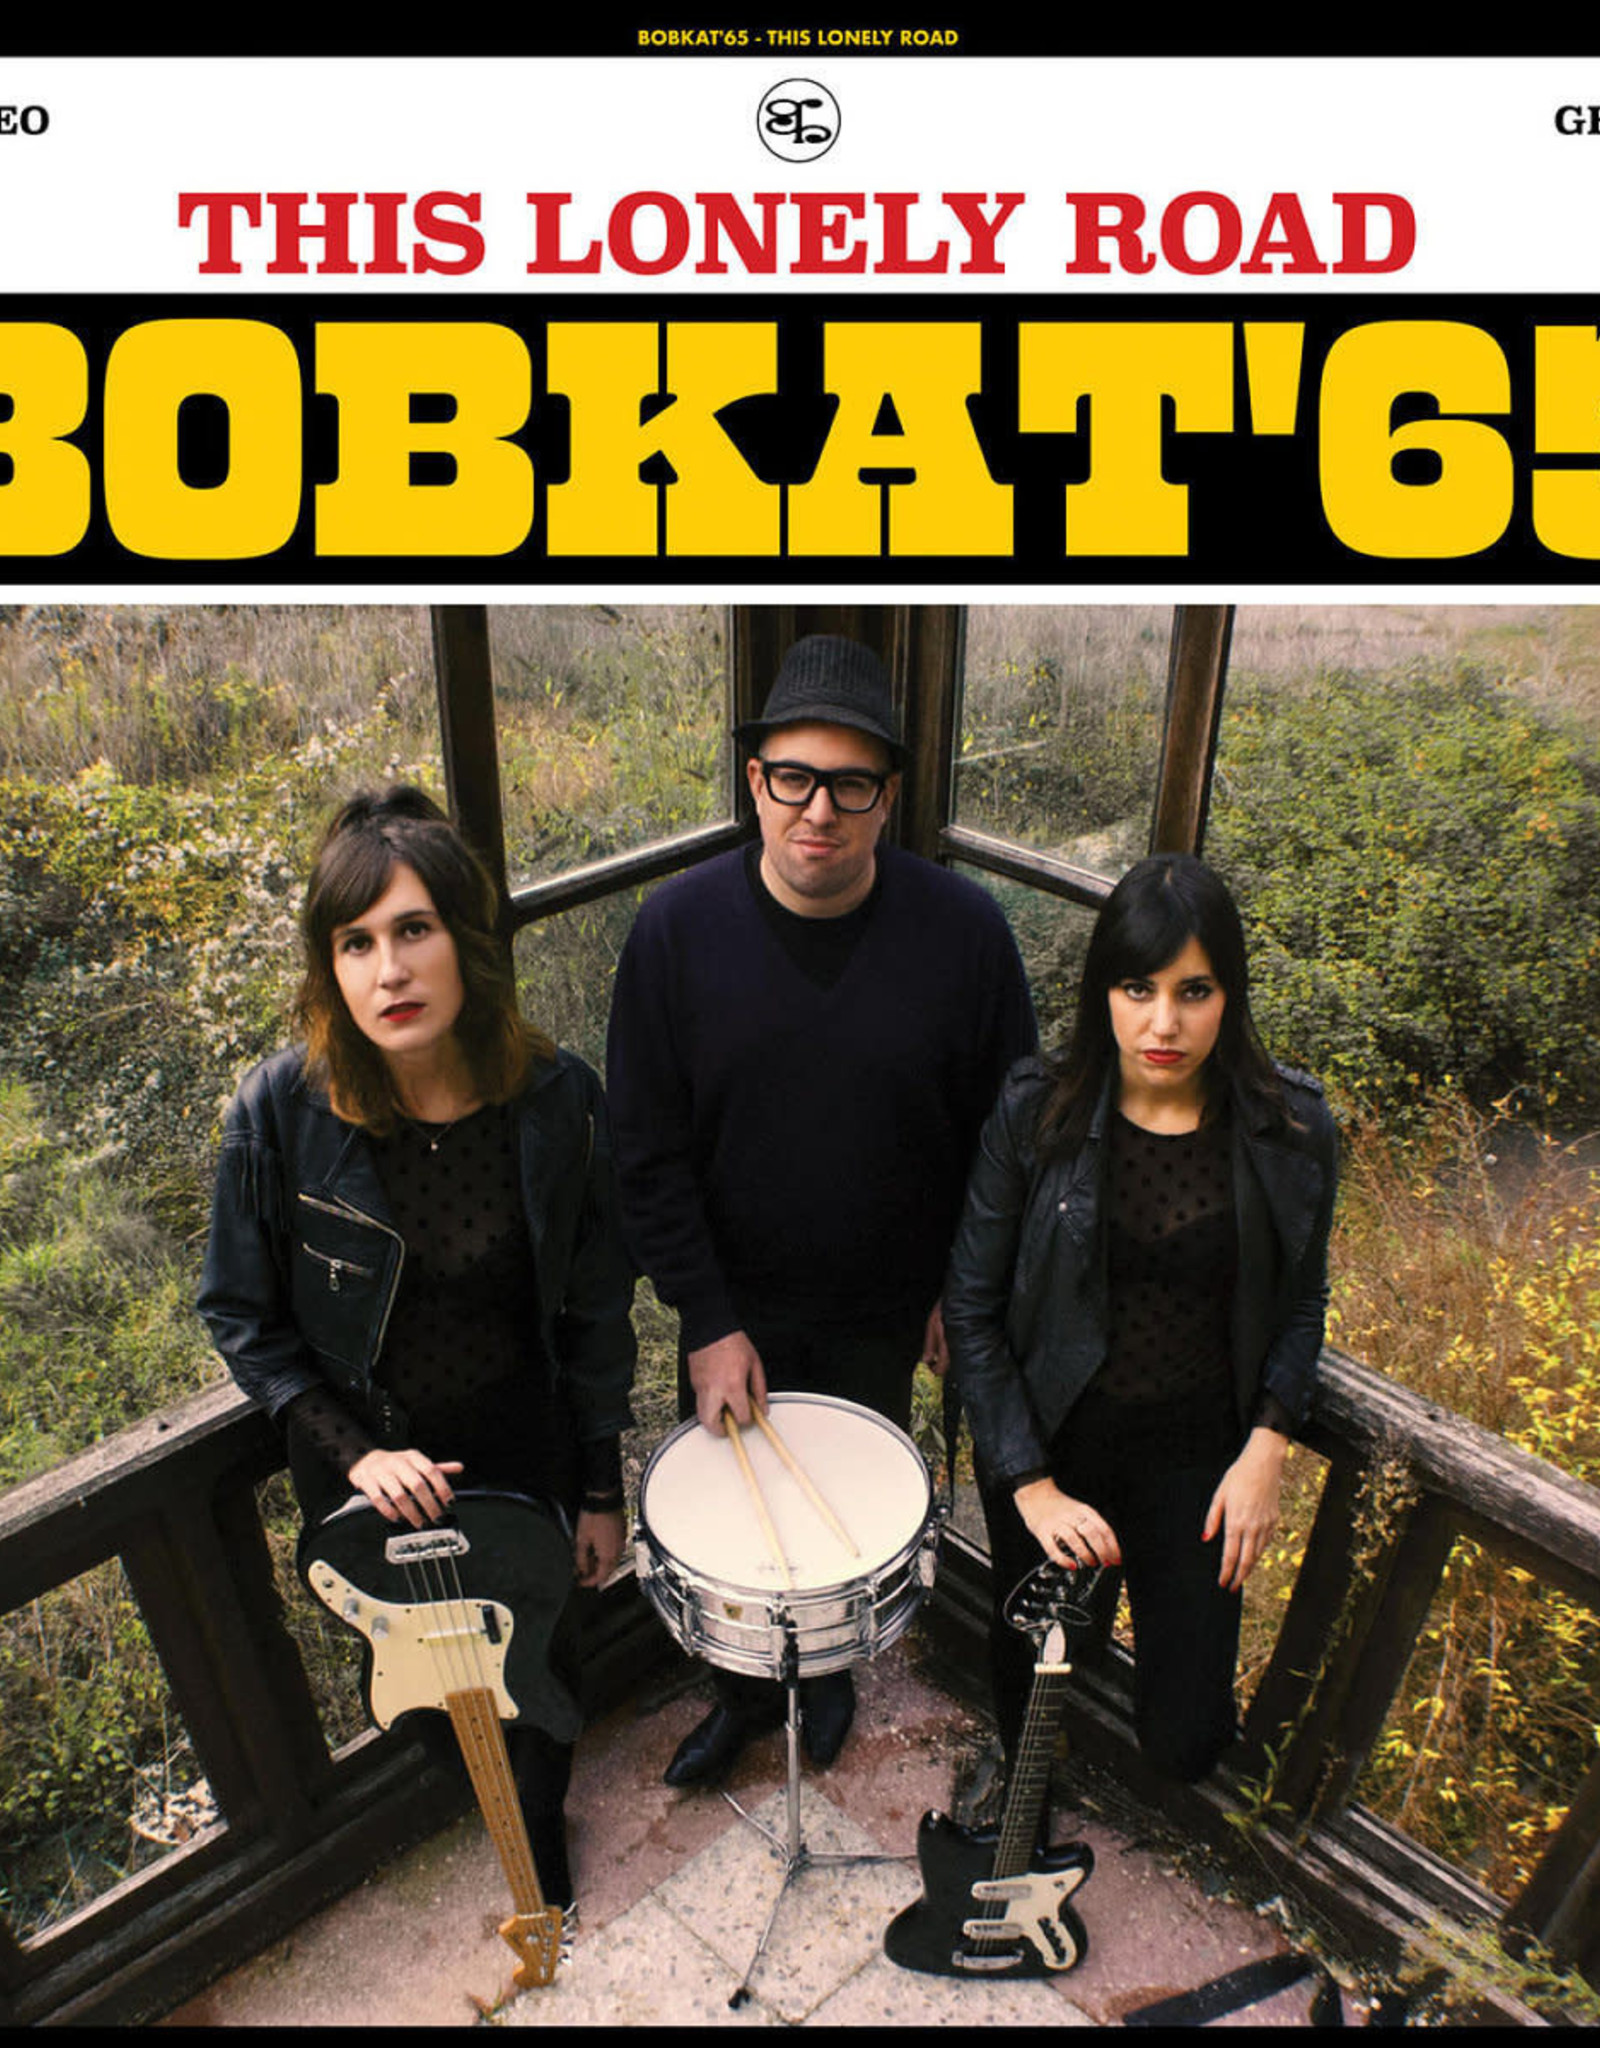 Bobkat'65 - This Lonely Road